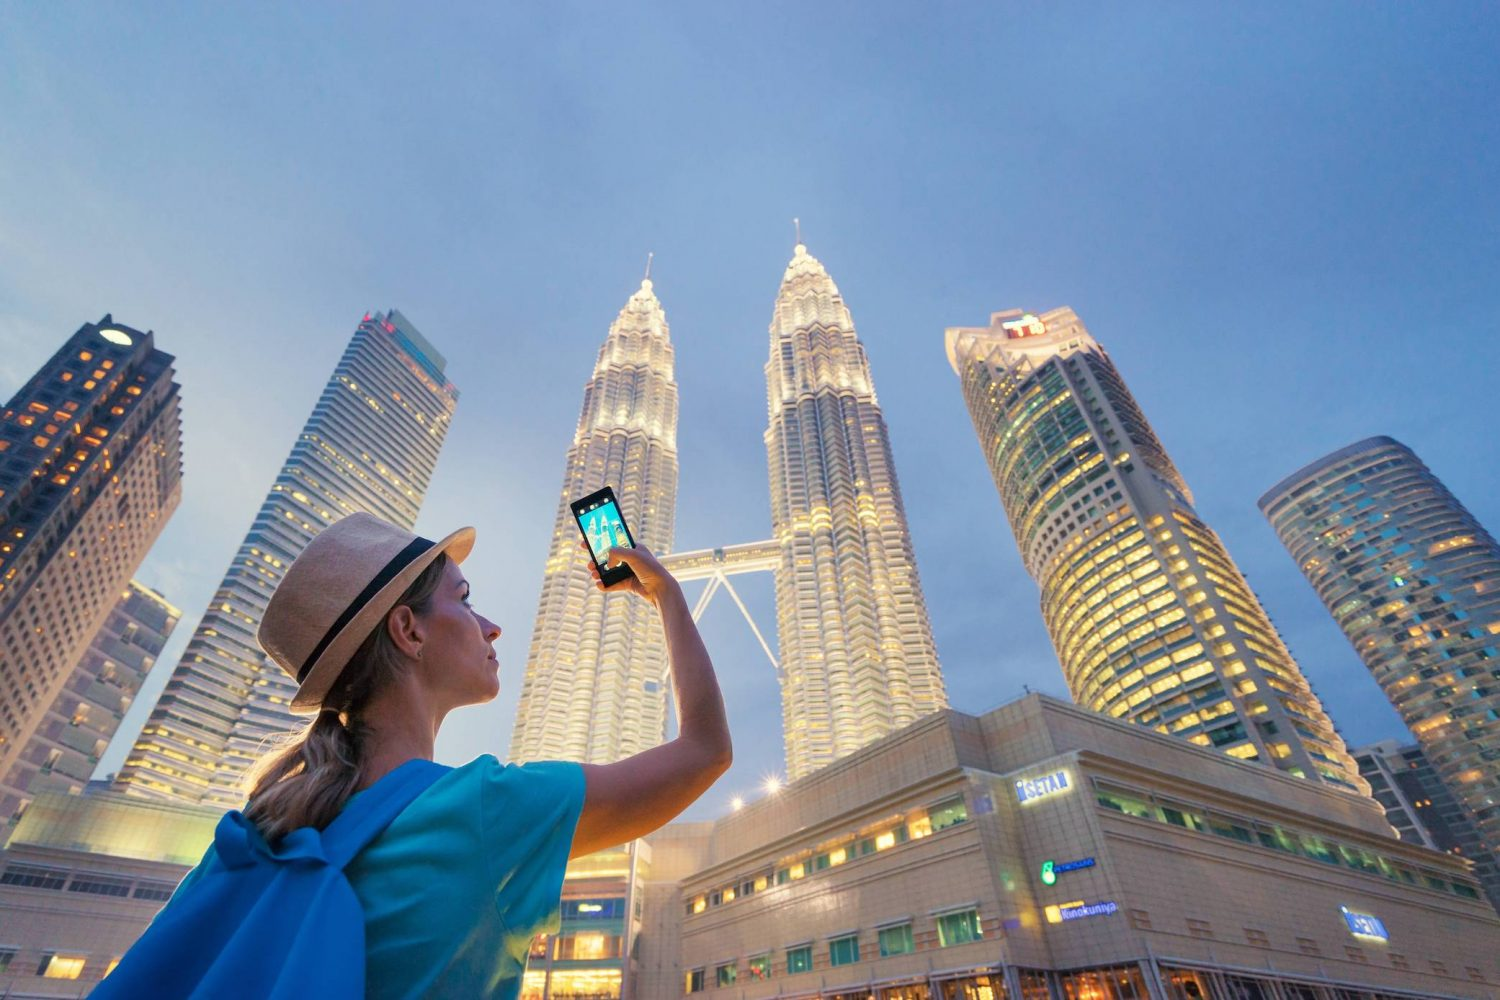 Tourist taking a photo of the Petronas Twin Towers